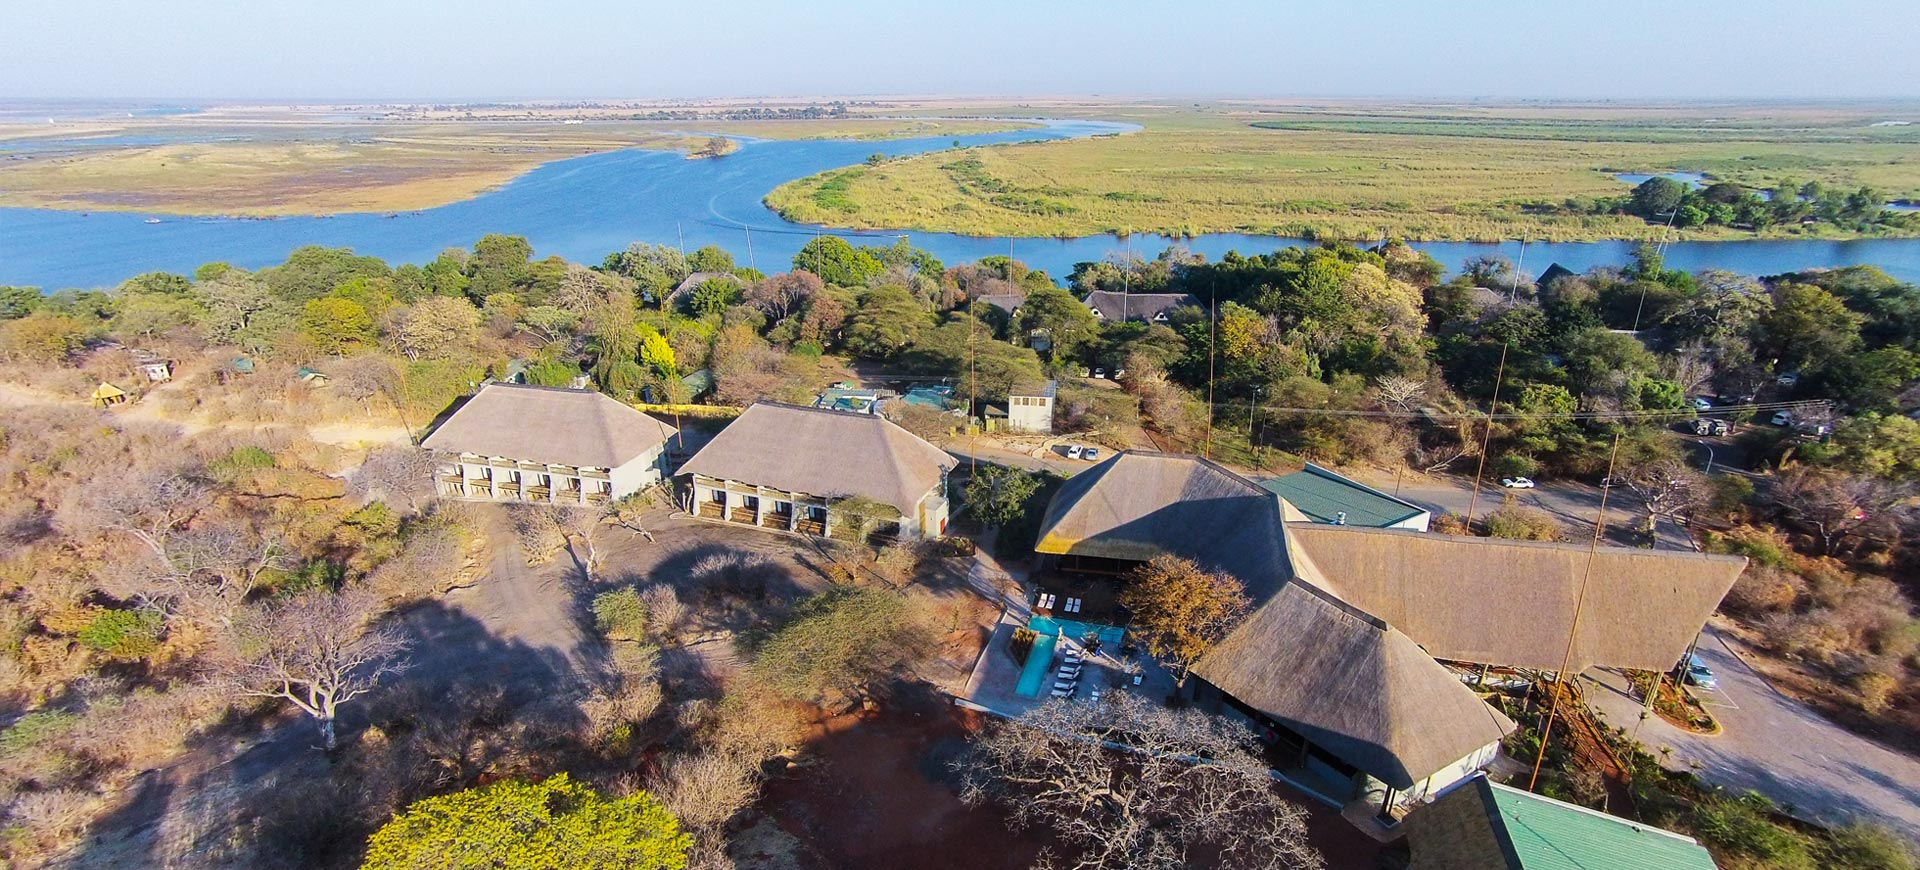 Bush Chobe Lodge